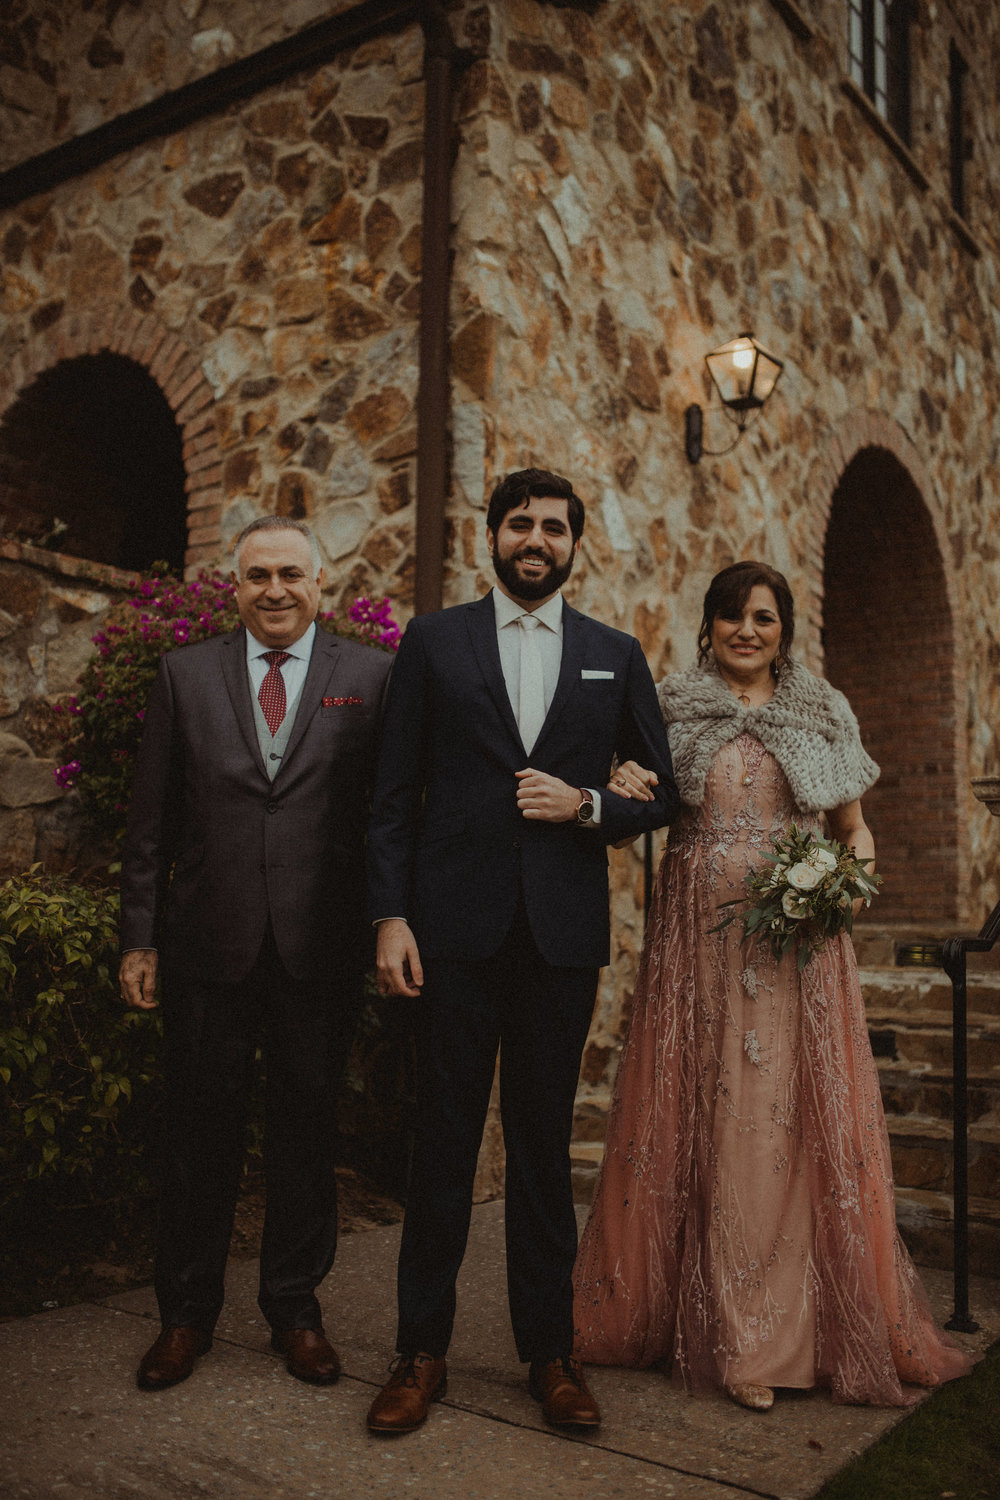 Tarrik and his parents before the wedding ceremony